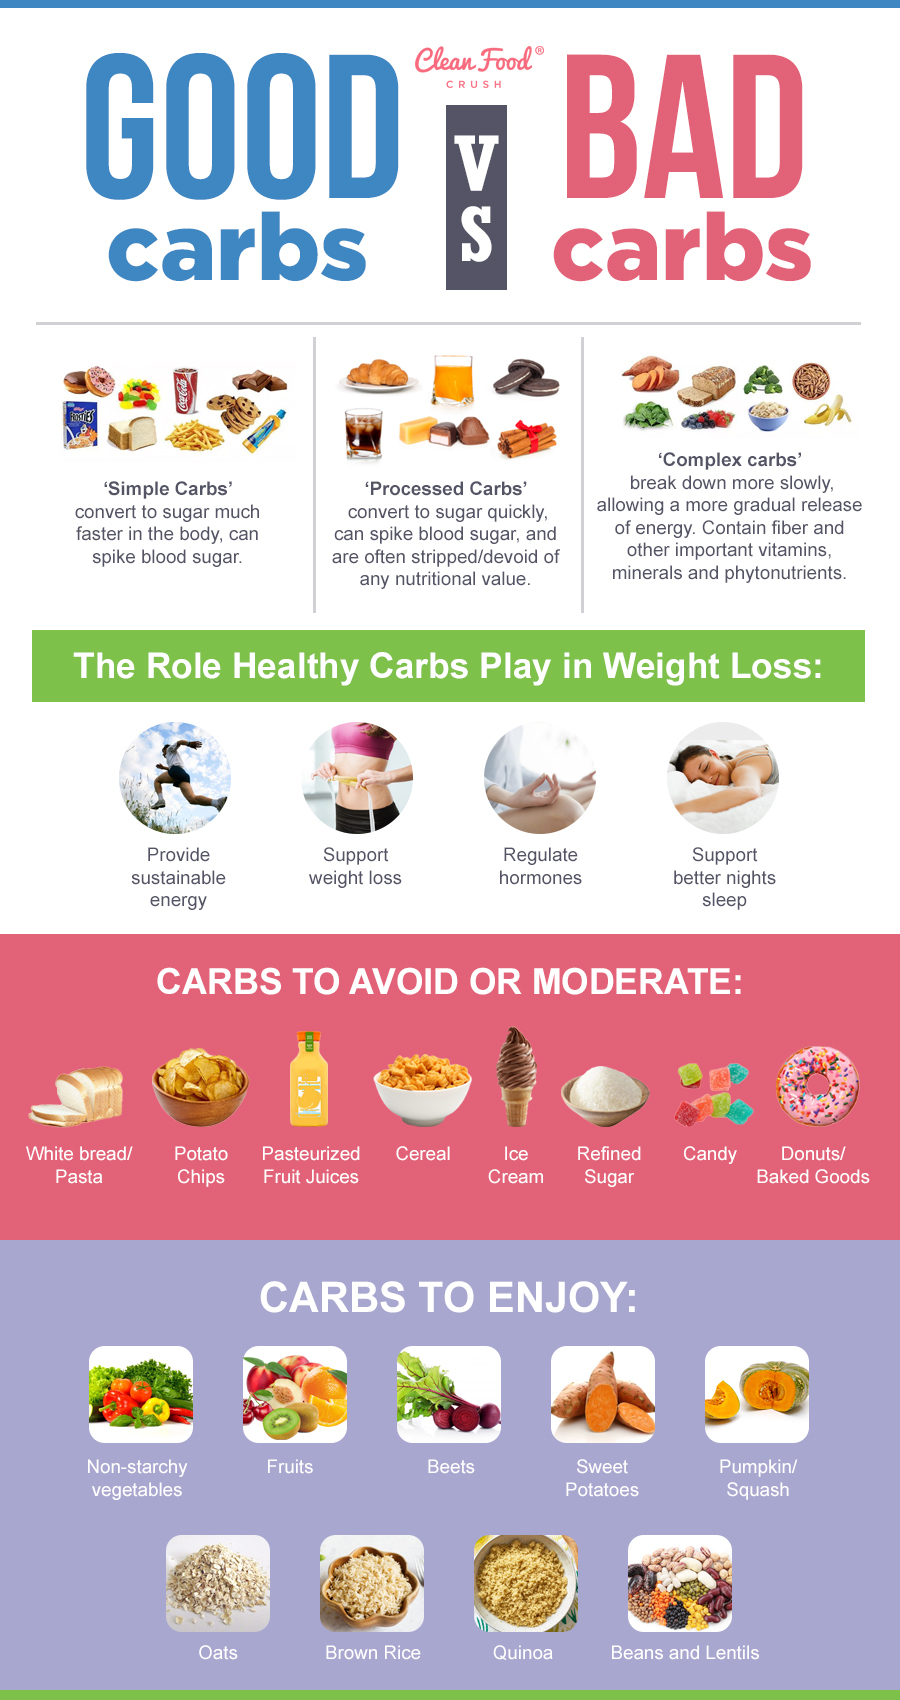 Good vs. Bad Carbs 10 Sources of Healthy Carbs that